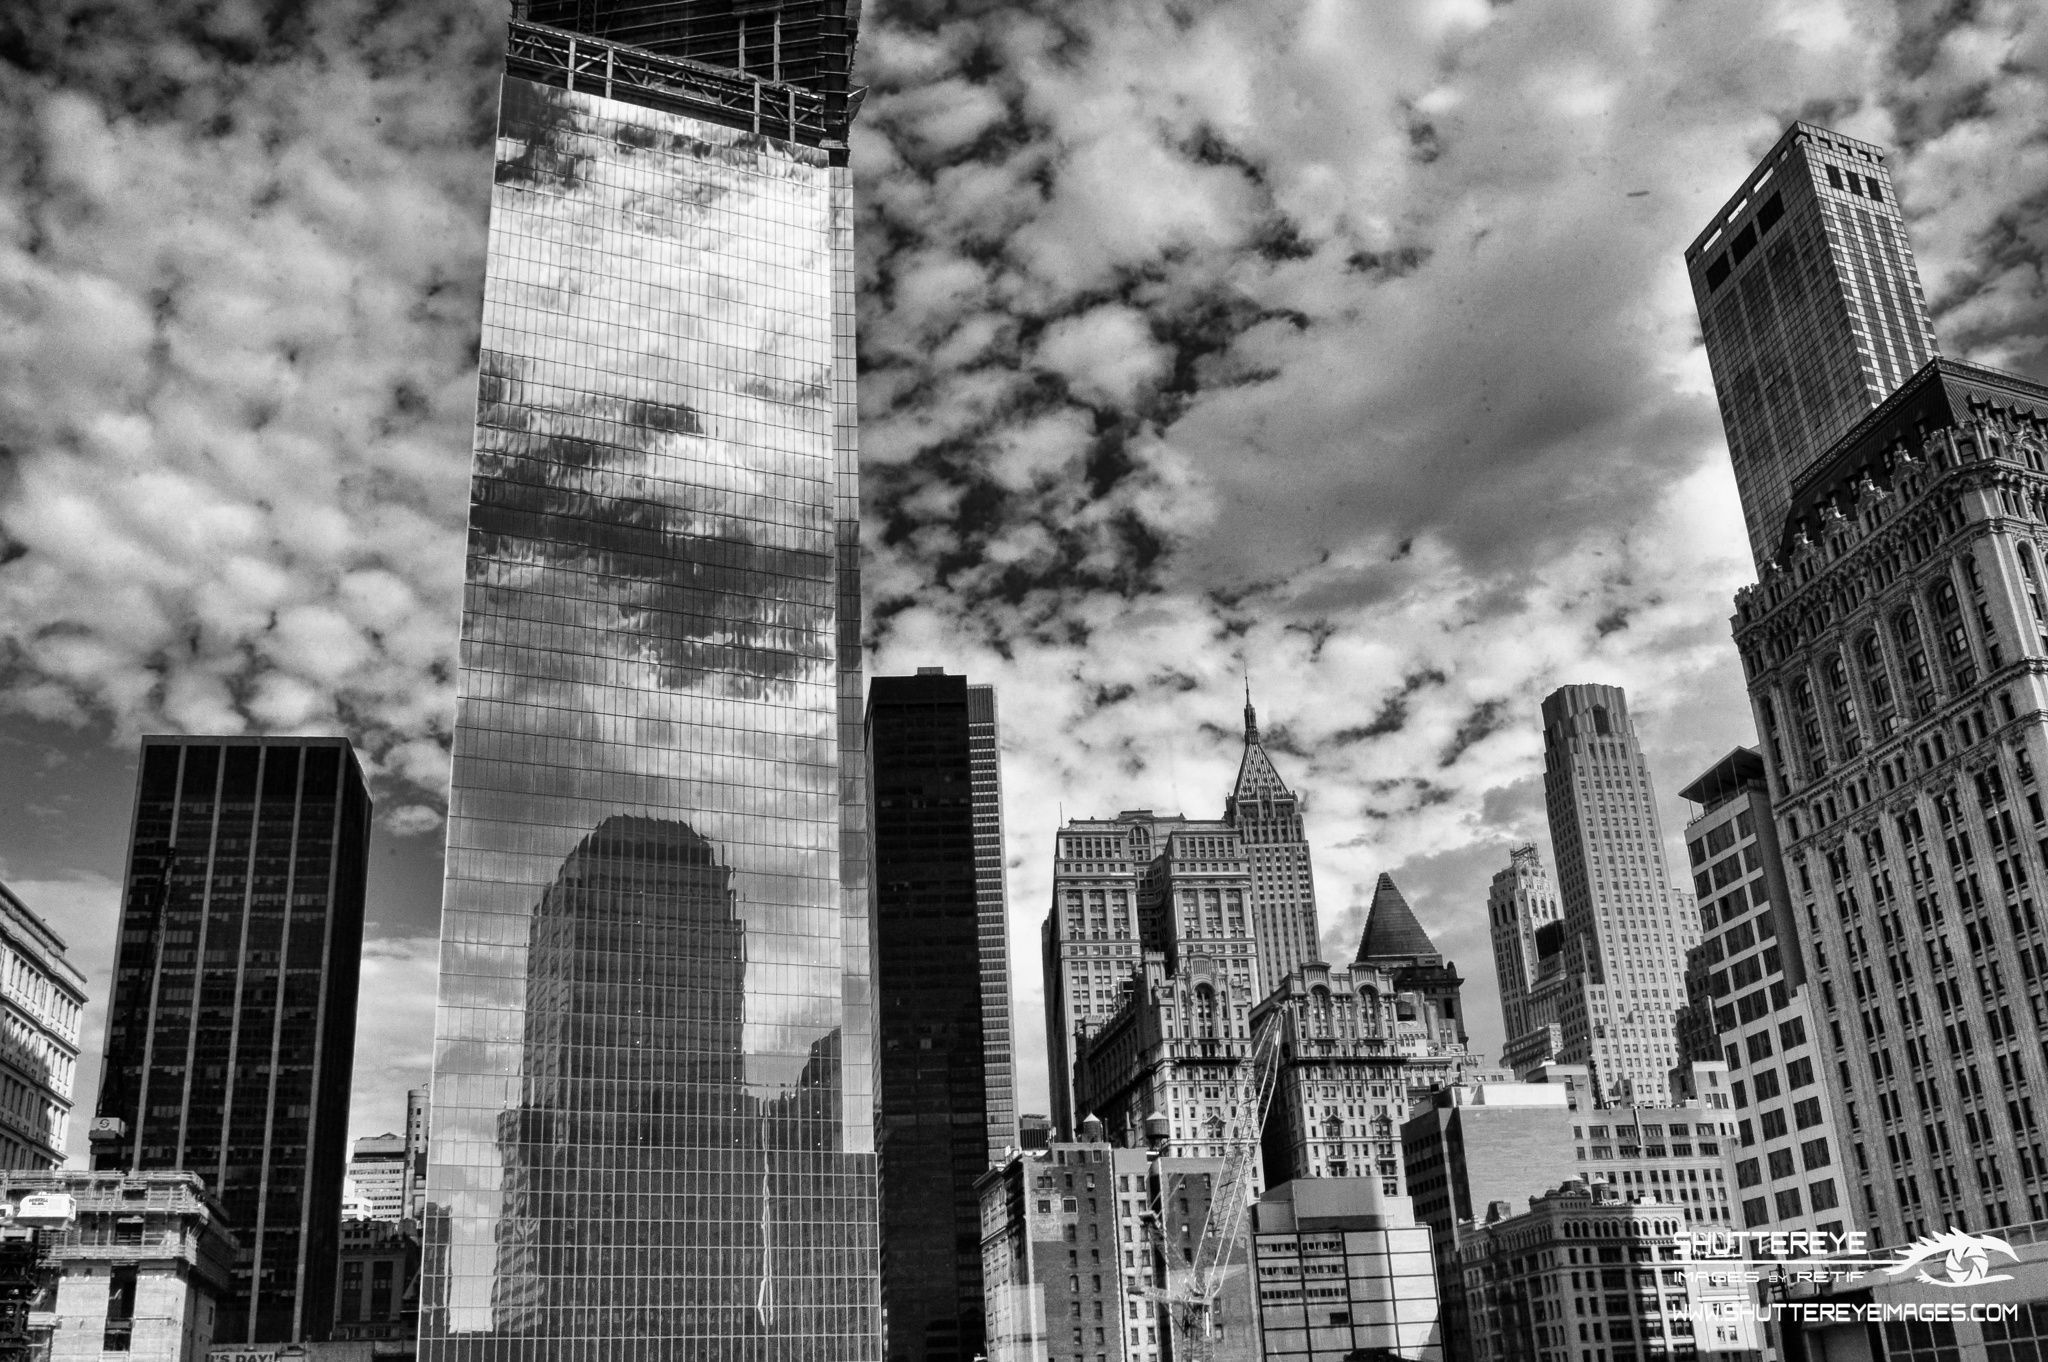 NYC Ground Zero Reflections by Shuttereye Images Monochrome on 500px #groundzeronyc NYC Ground Zero Reflections by Shuttereye Images Monochrome on 500px #groundzeronyc